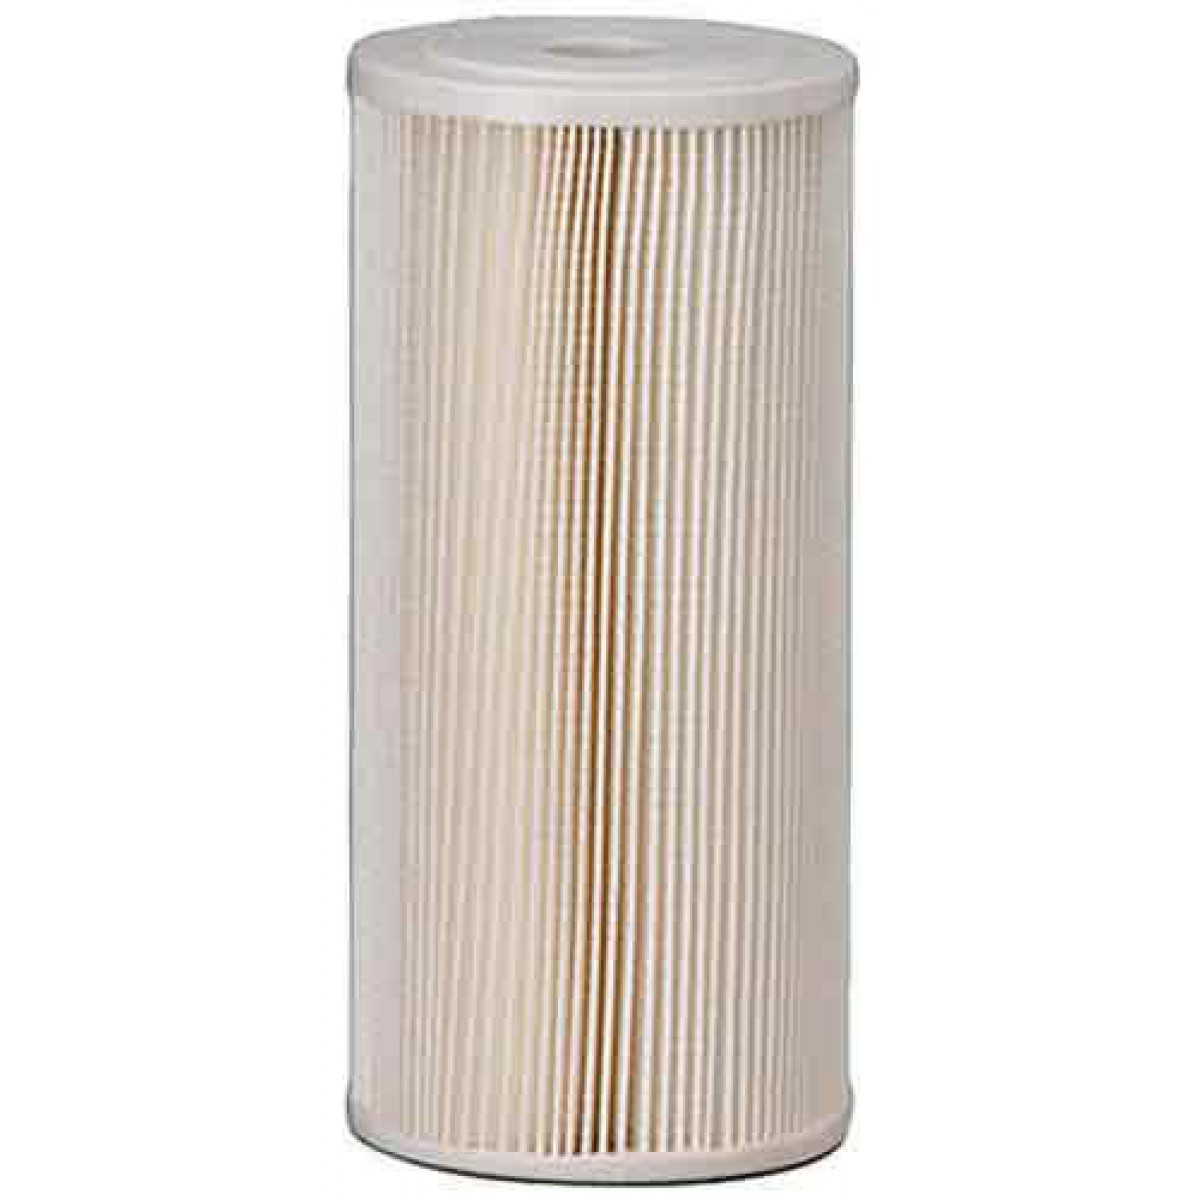 Image Result For Well Water Sediment Filter